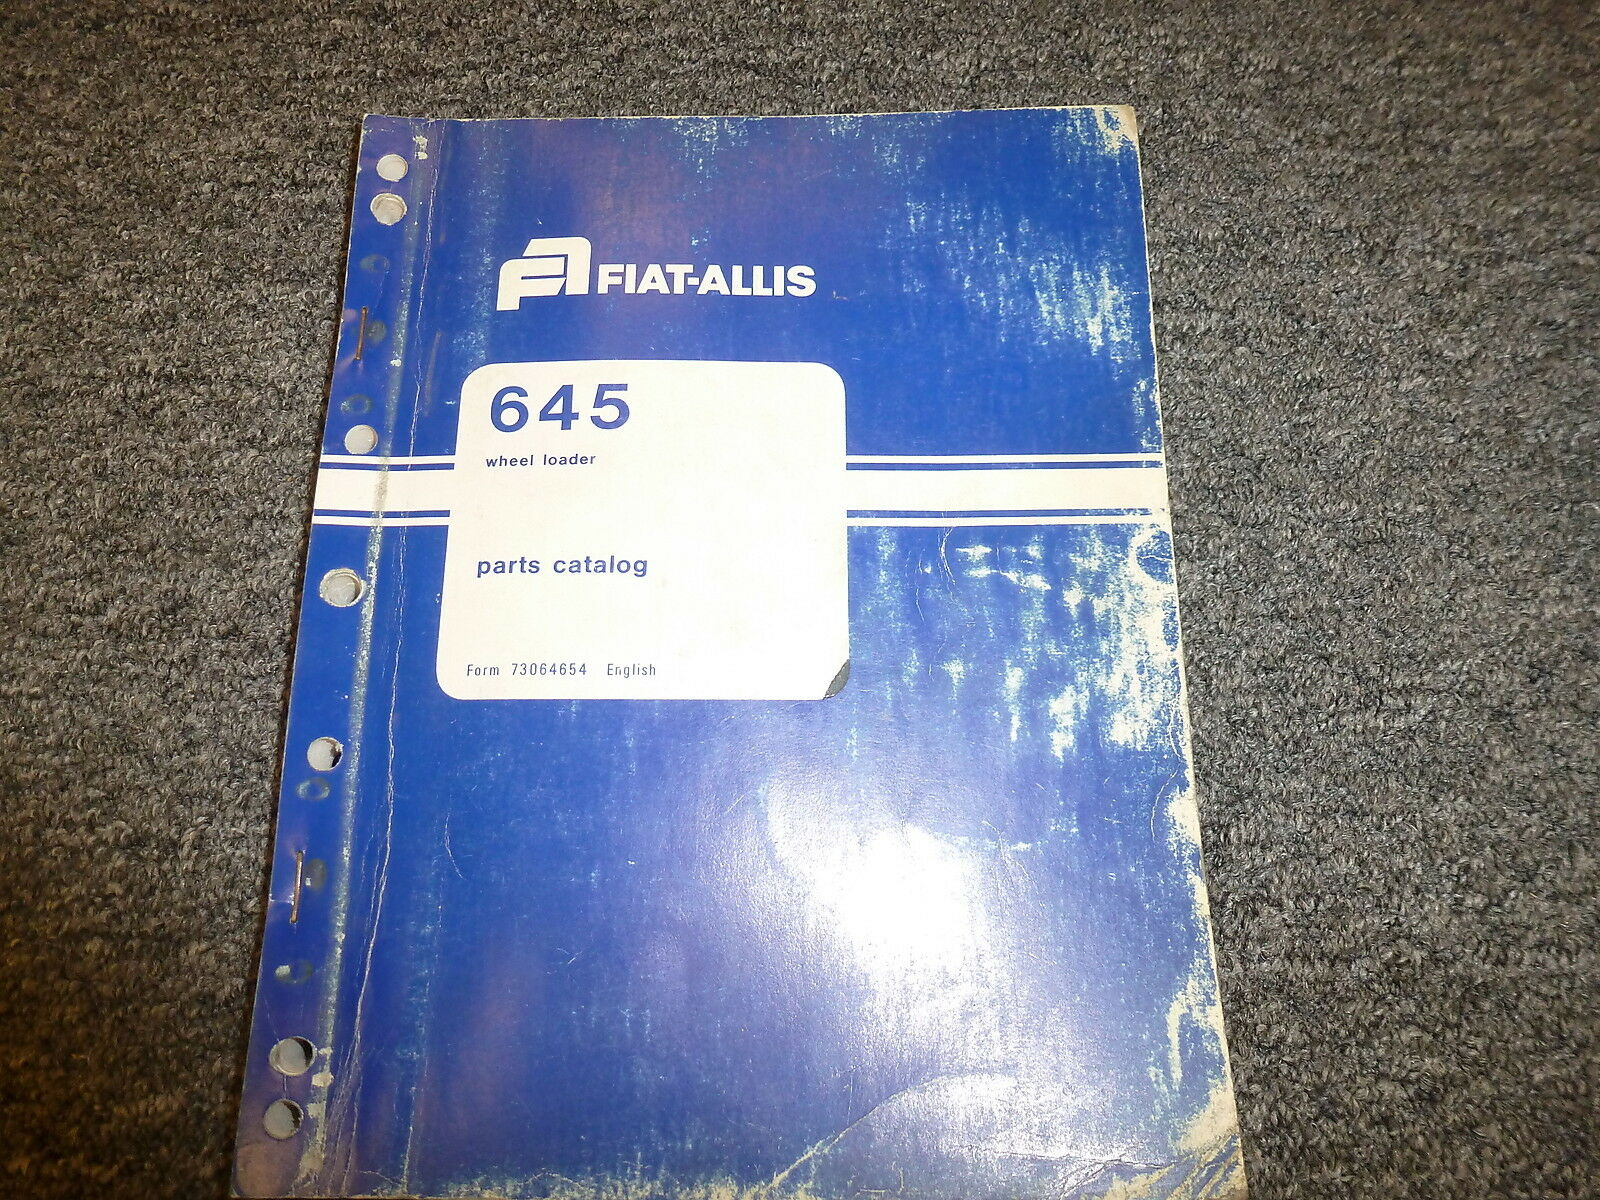 Fiat Allis 645 Articulated Wheel Loader Parts Catalog Manual 73064654 1 of  1Only 1 available ...